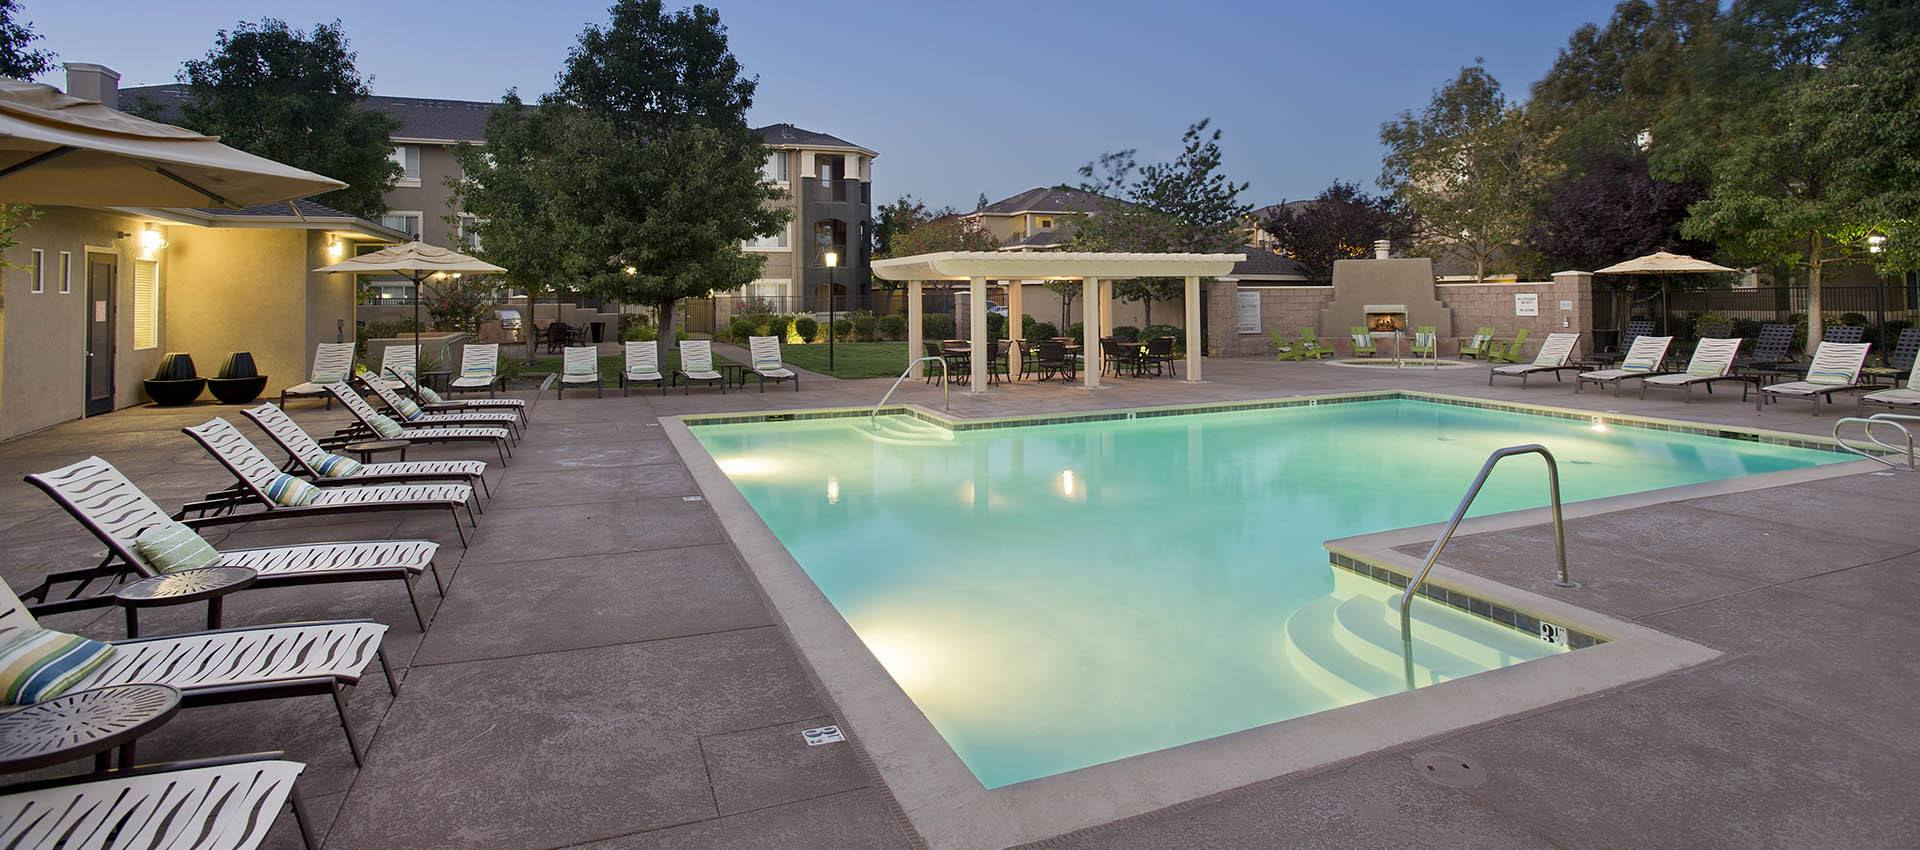 Outdoor pool at Cross Pointe Apartment Homes in Antioch